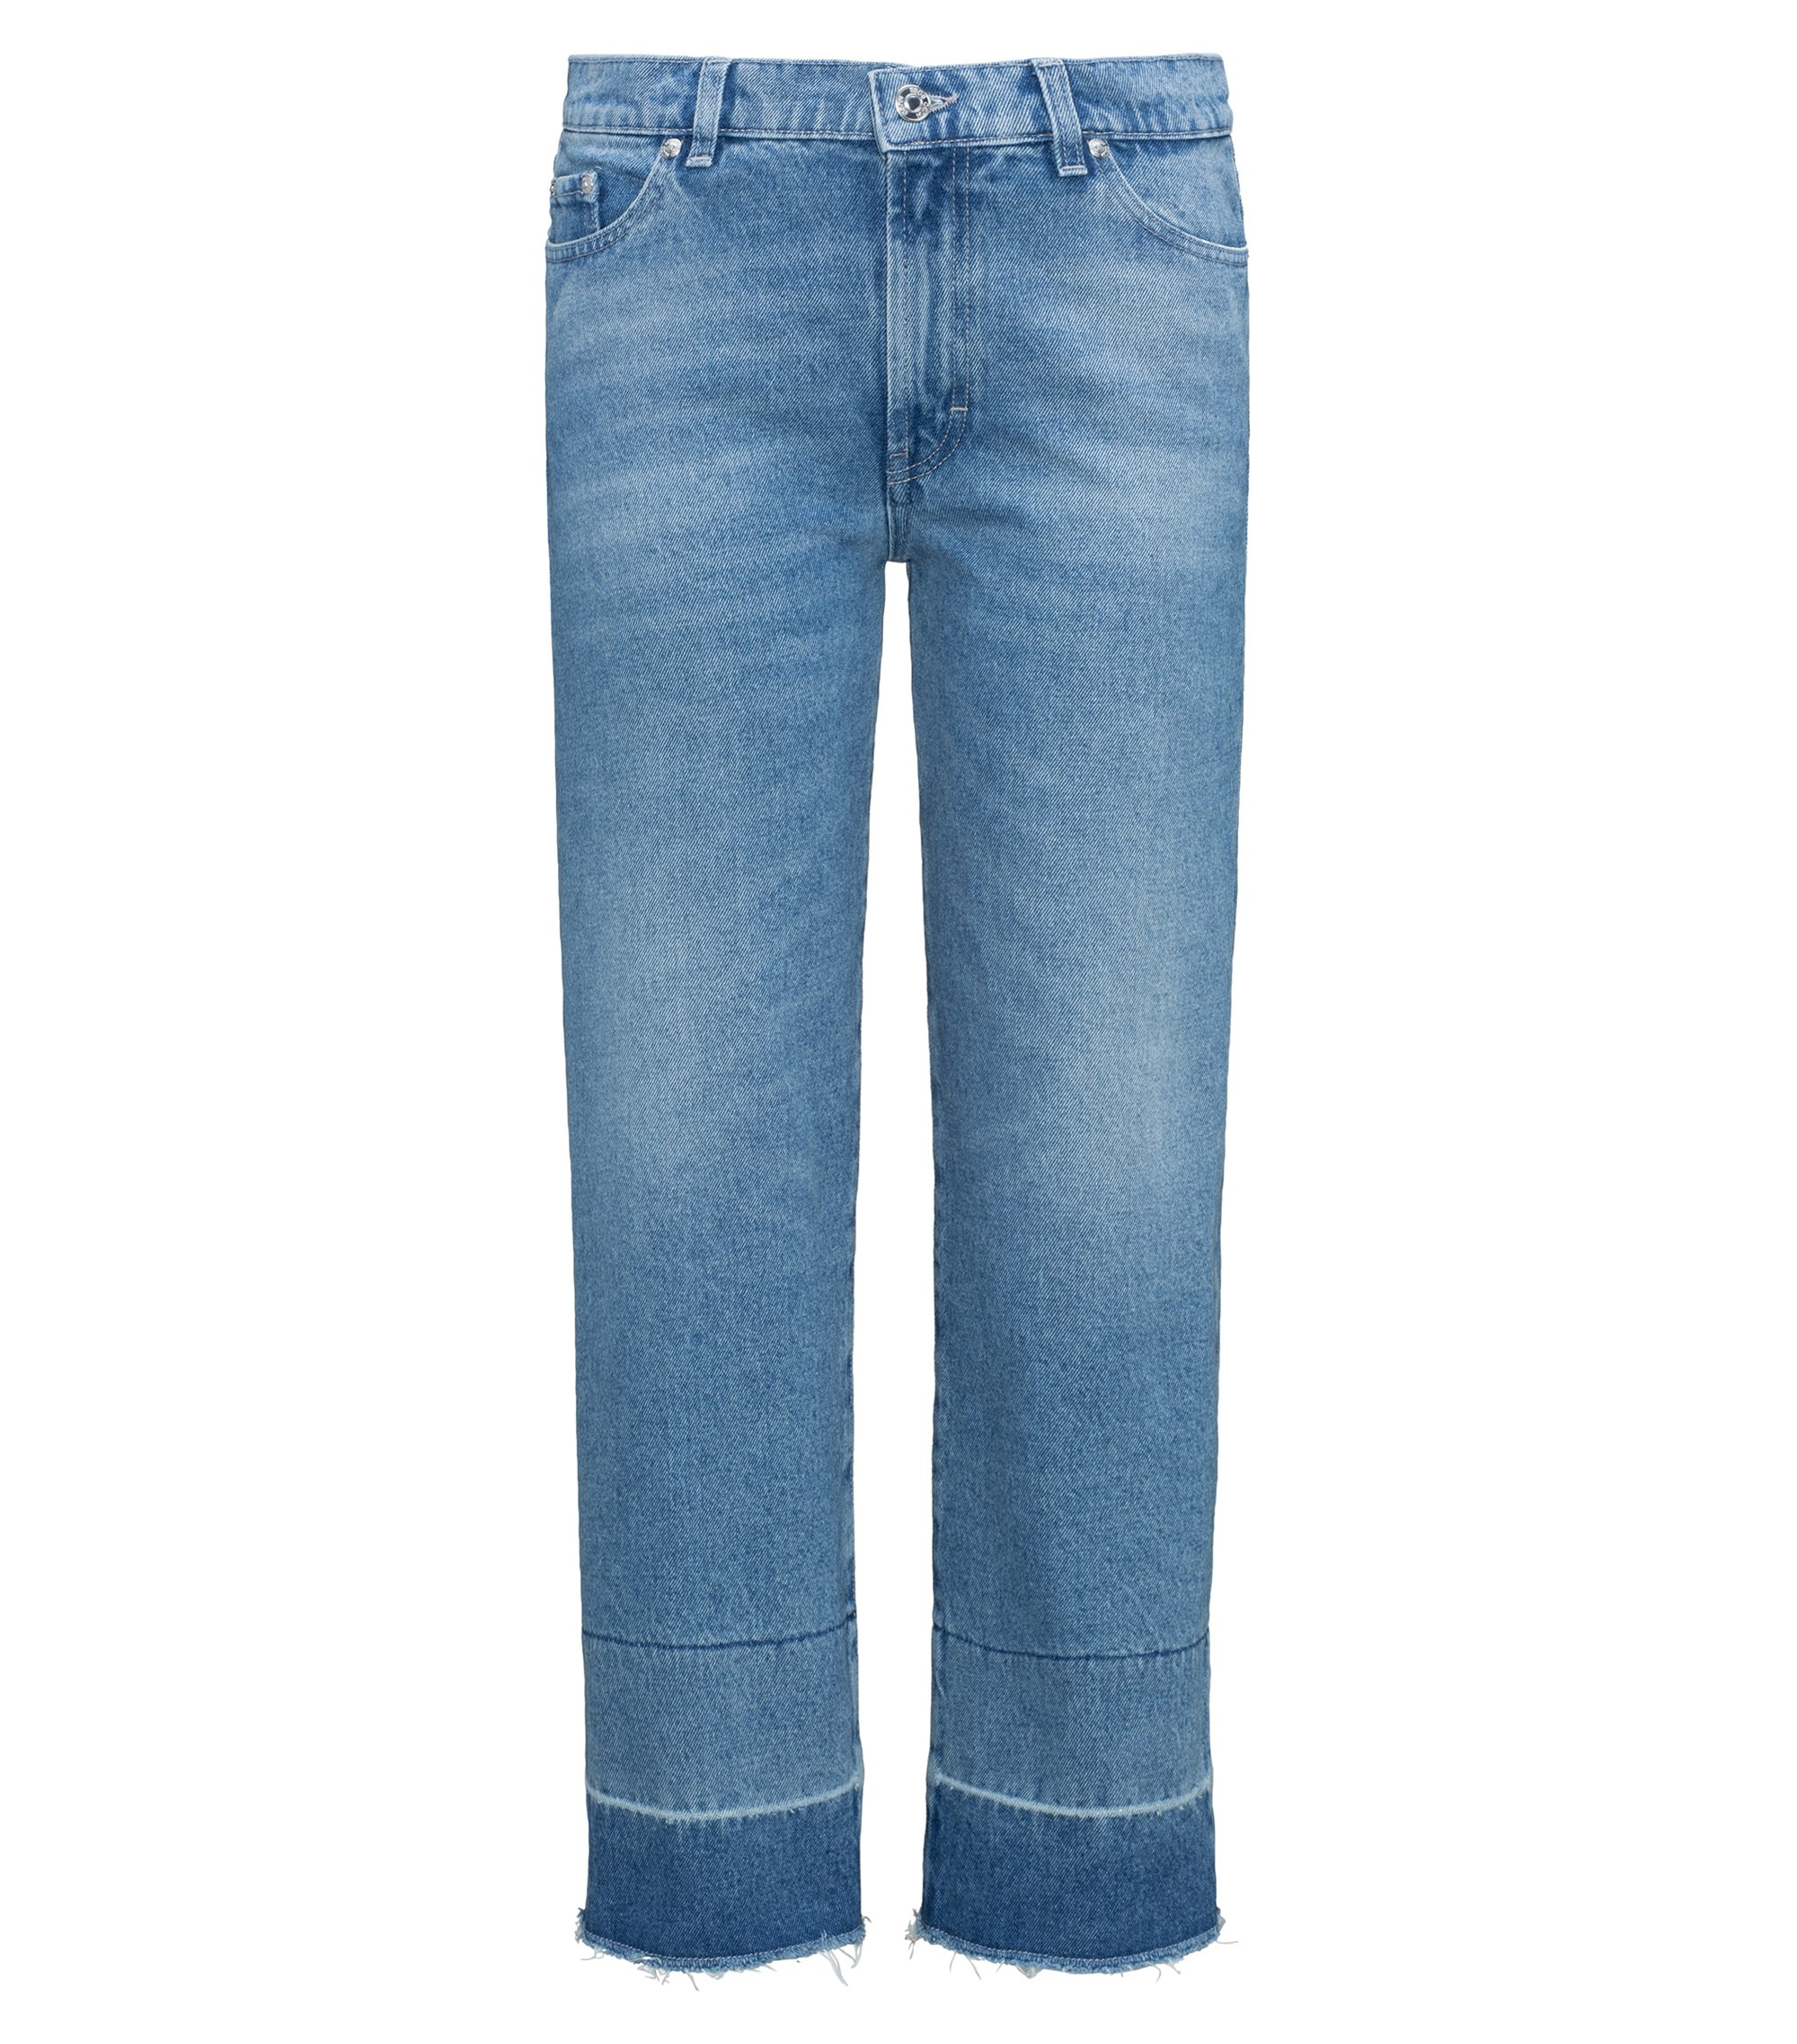 Jeans slim fit alla caviglia in denim stonewashed, Celeste